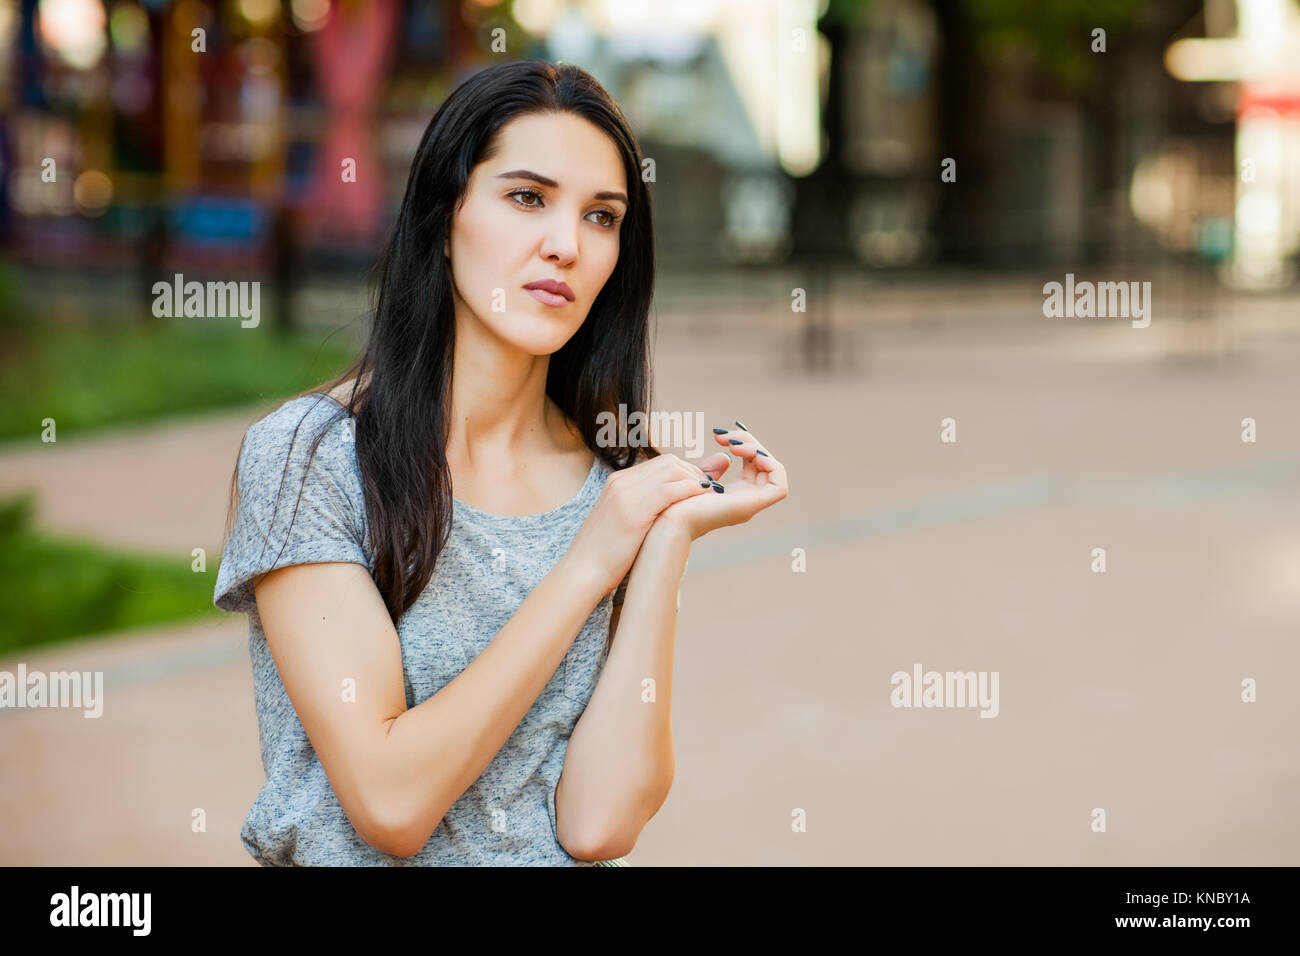 Young thoughtfull girl in gray shirt with long brunette hair in the street. Close up portrait - Stock Image